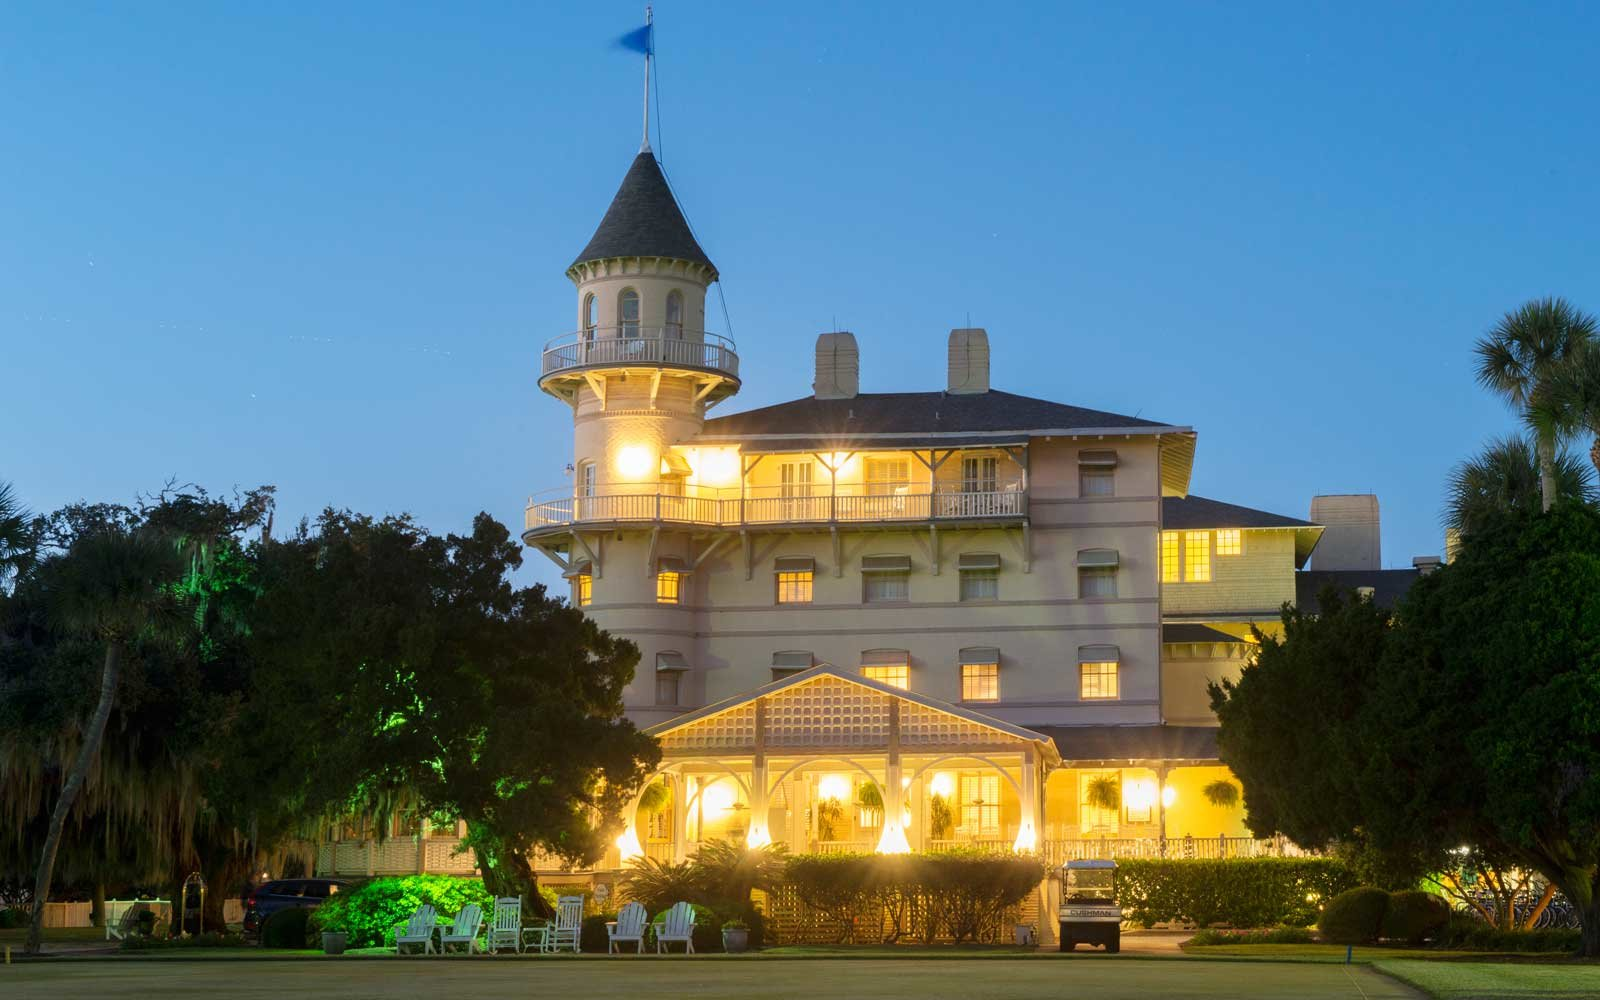 Exterior of the Jekyll Island Club hotel, at night